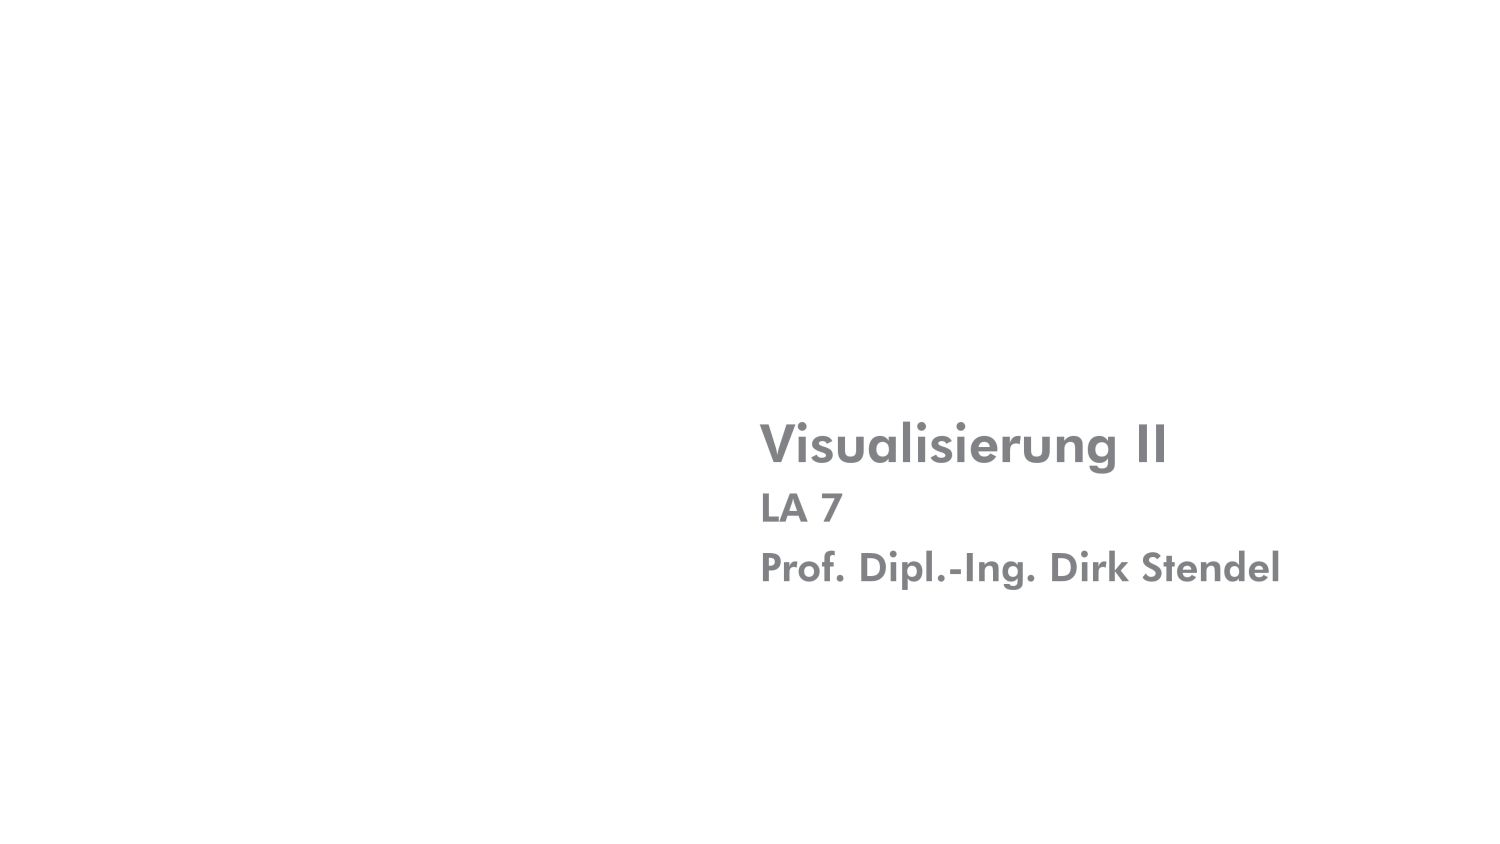 Visualisierung II InfoScreen-001